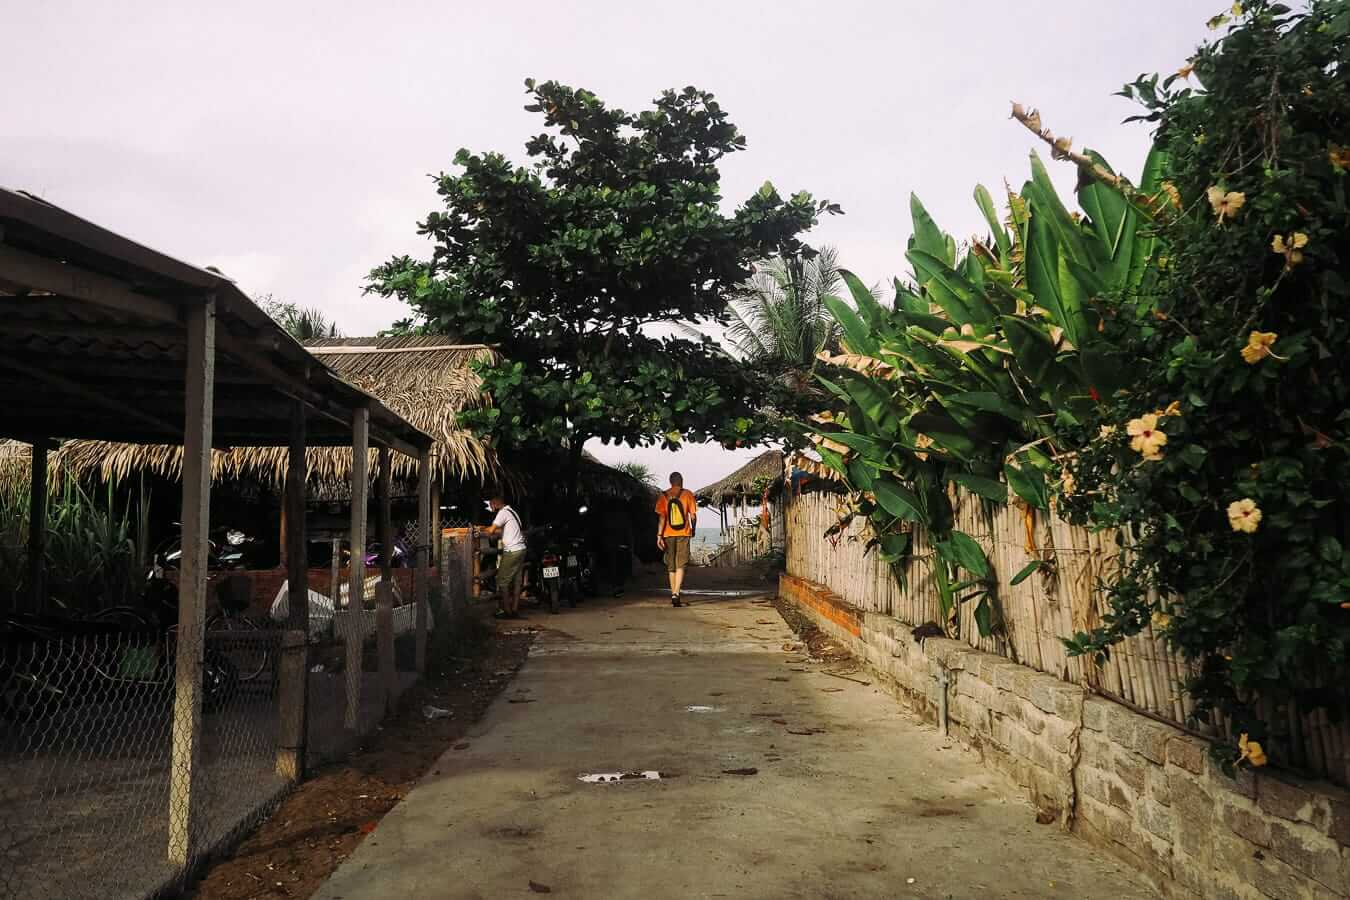 Path to An Bang beach: Hoi An's beaches